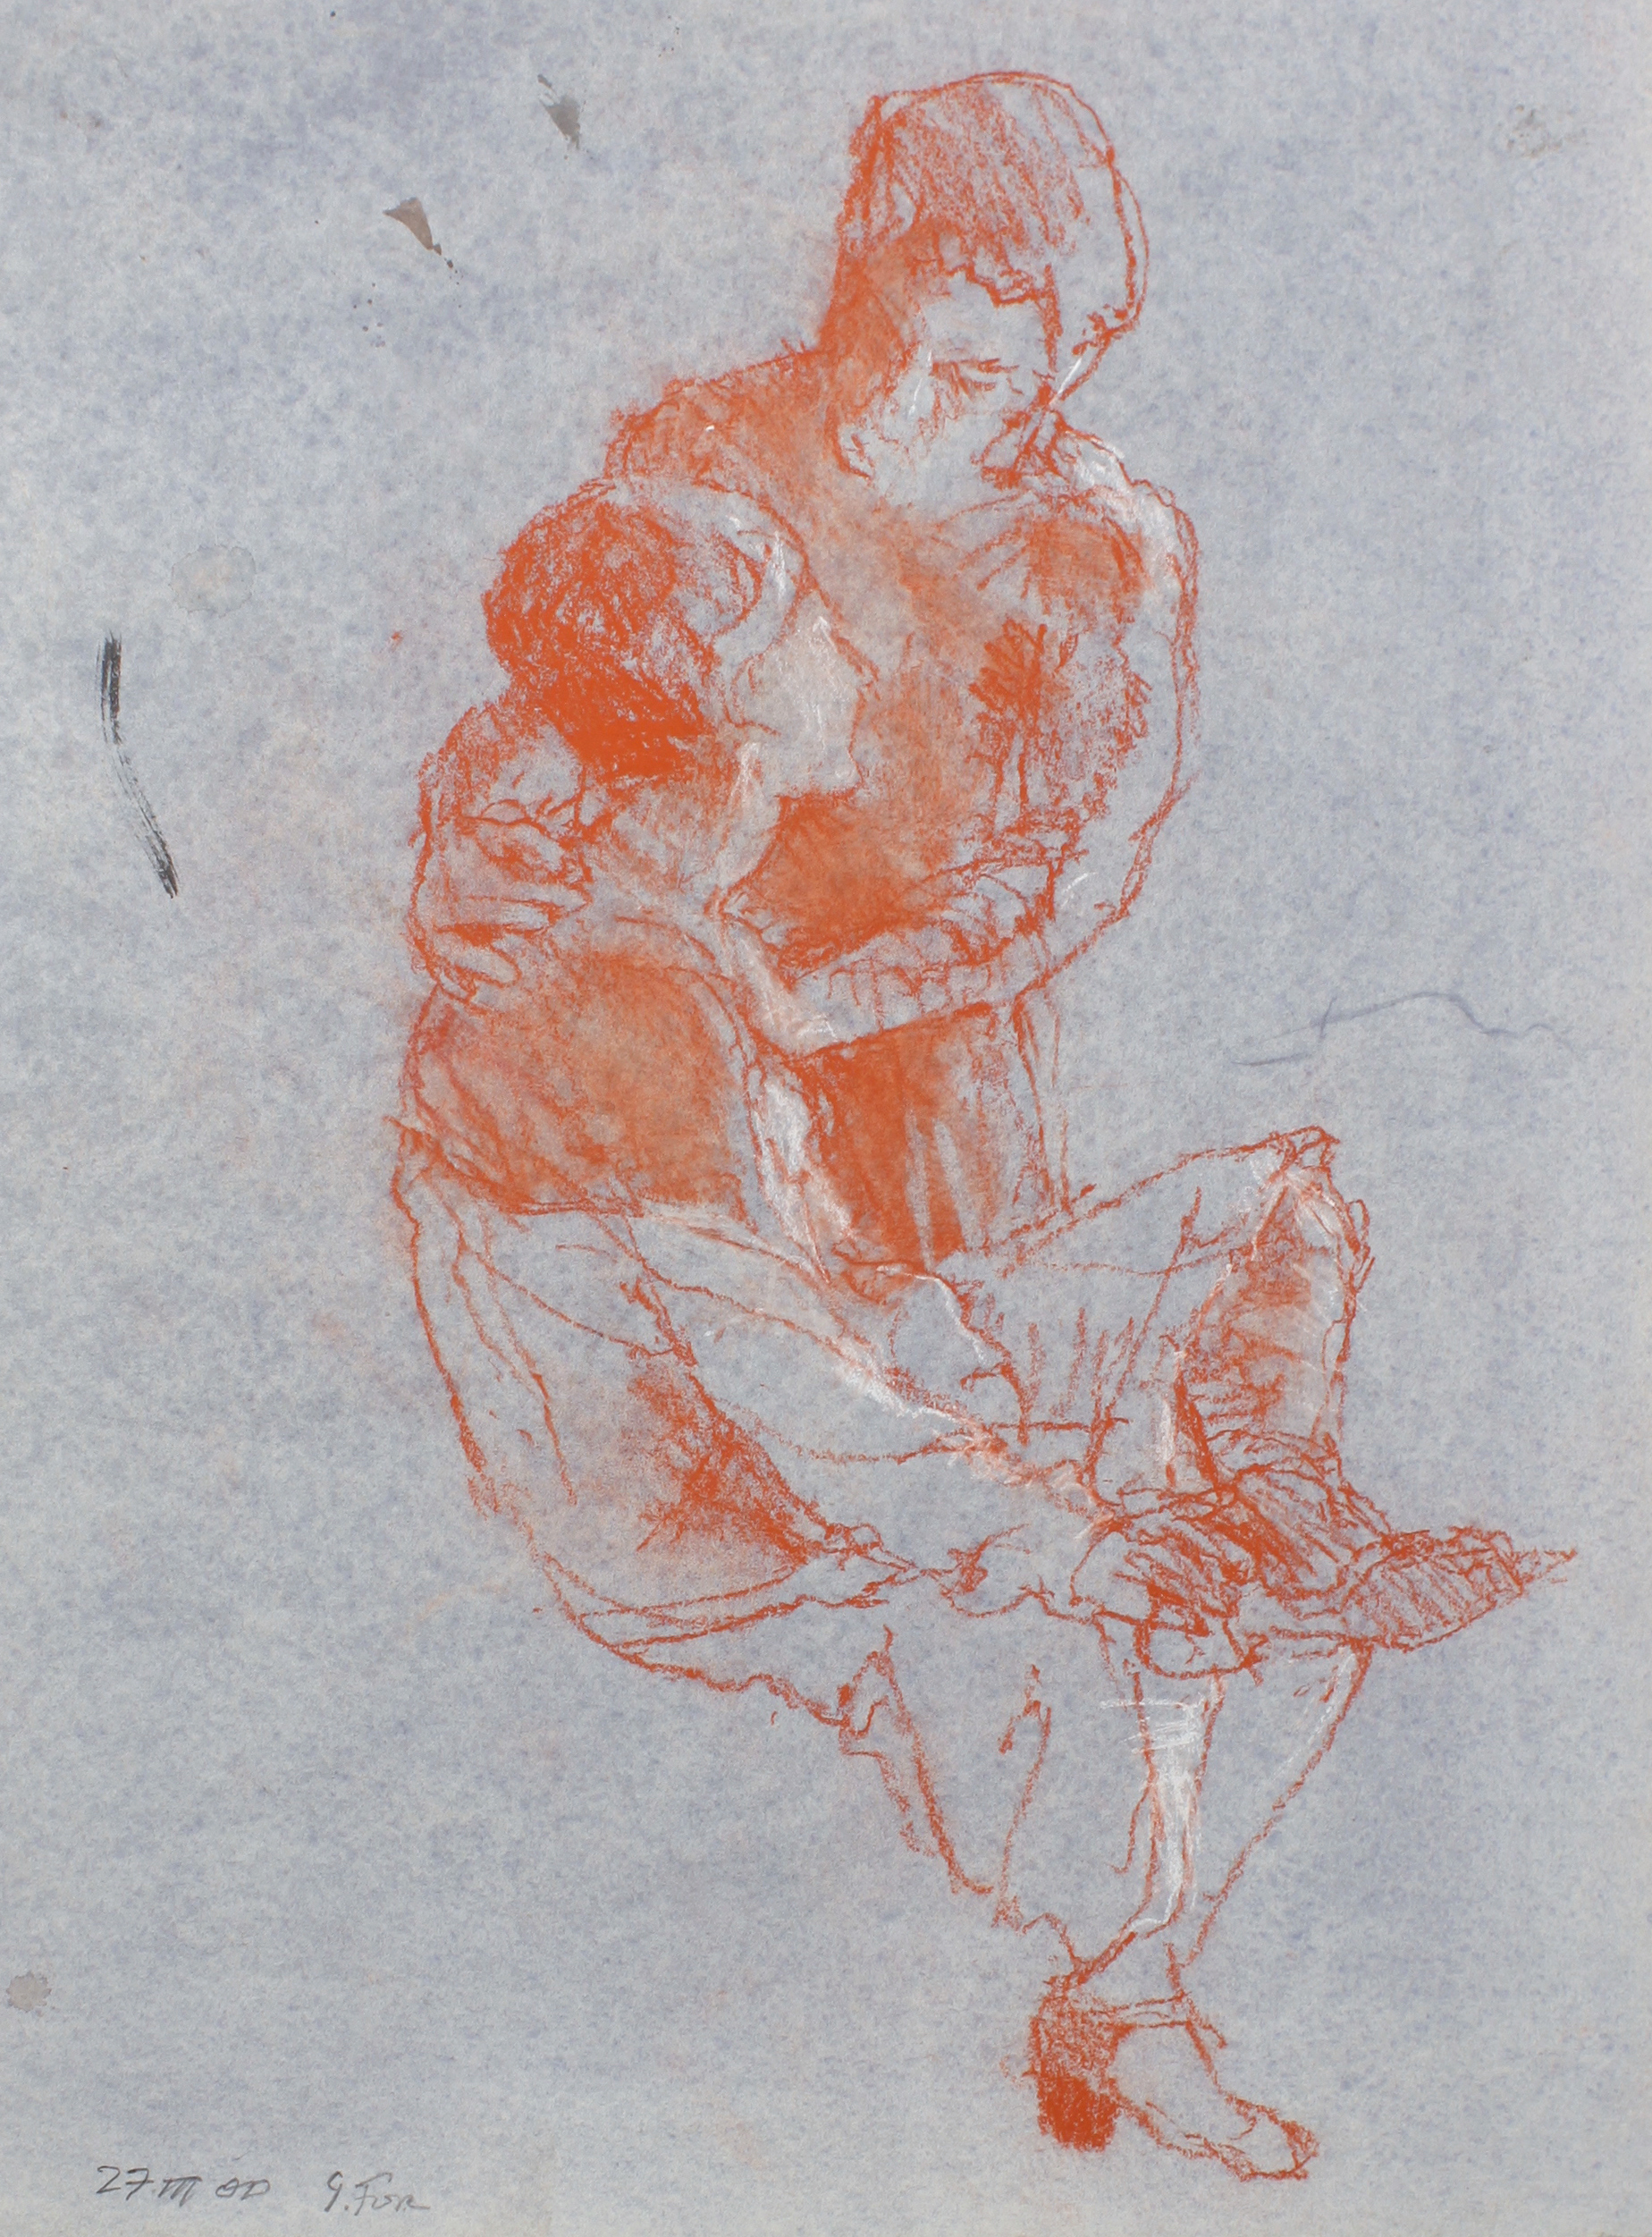 2000_Standing_Figure_Clasping_Shoulders_of_Seated_Figure_pastel_on_bluented-_paper_15x11in_WPF537.jpg